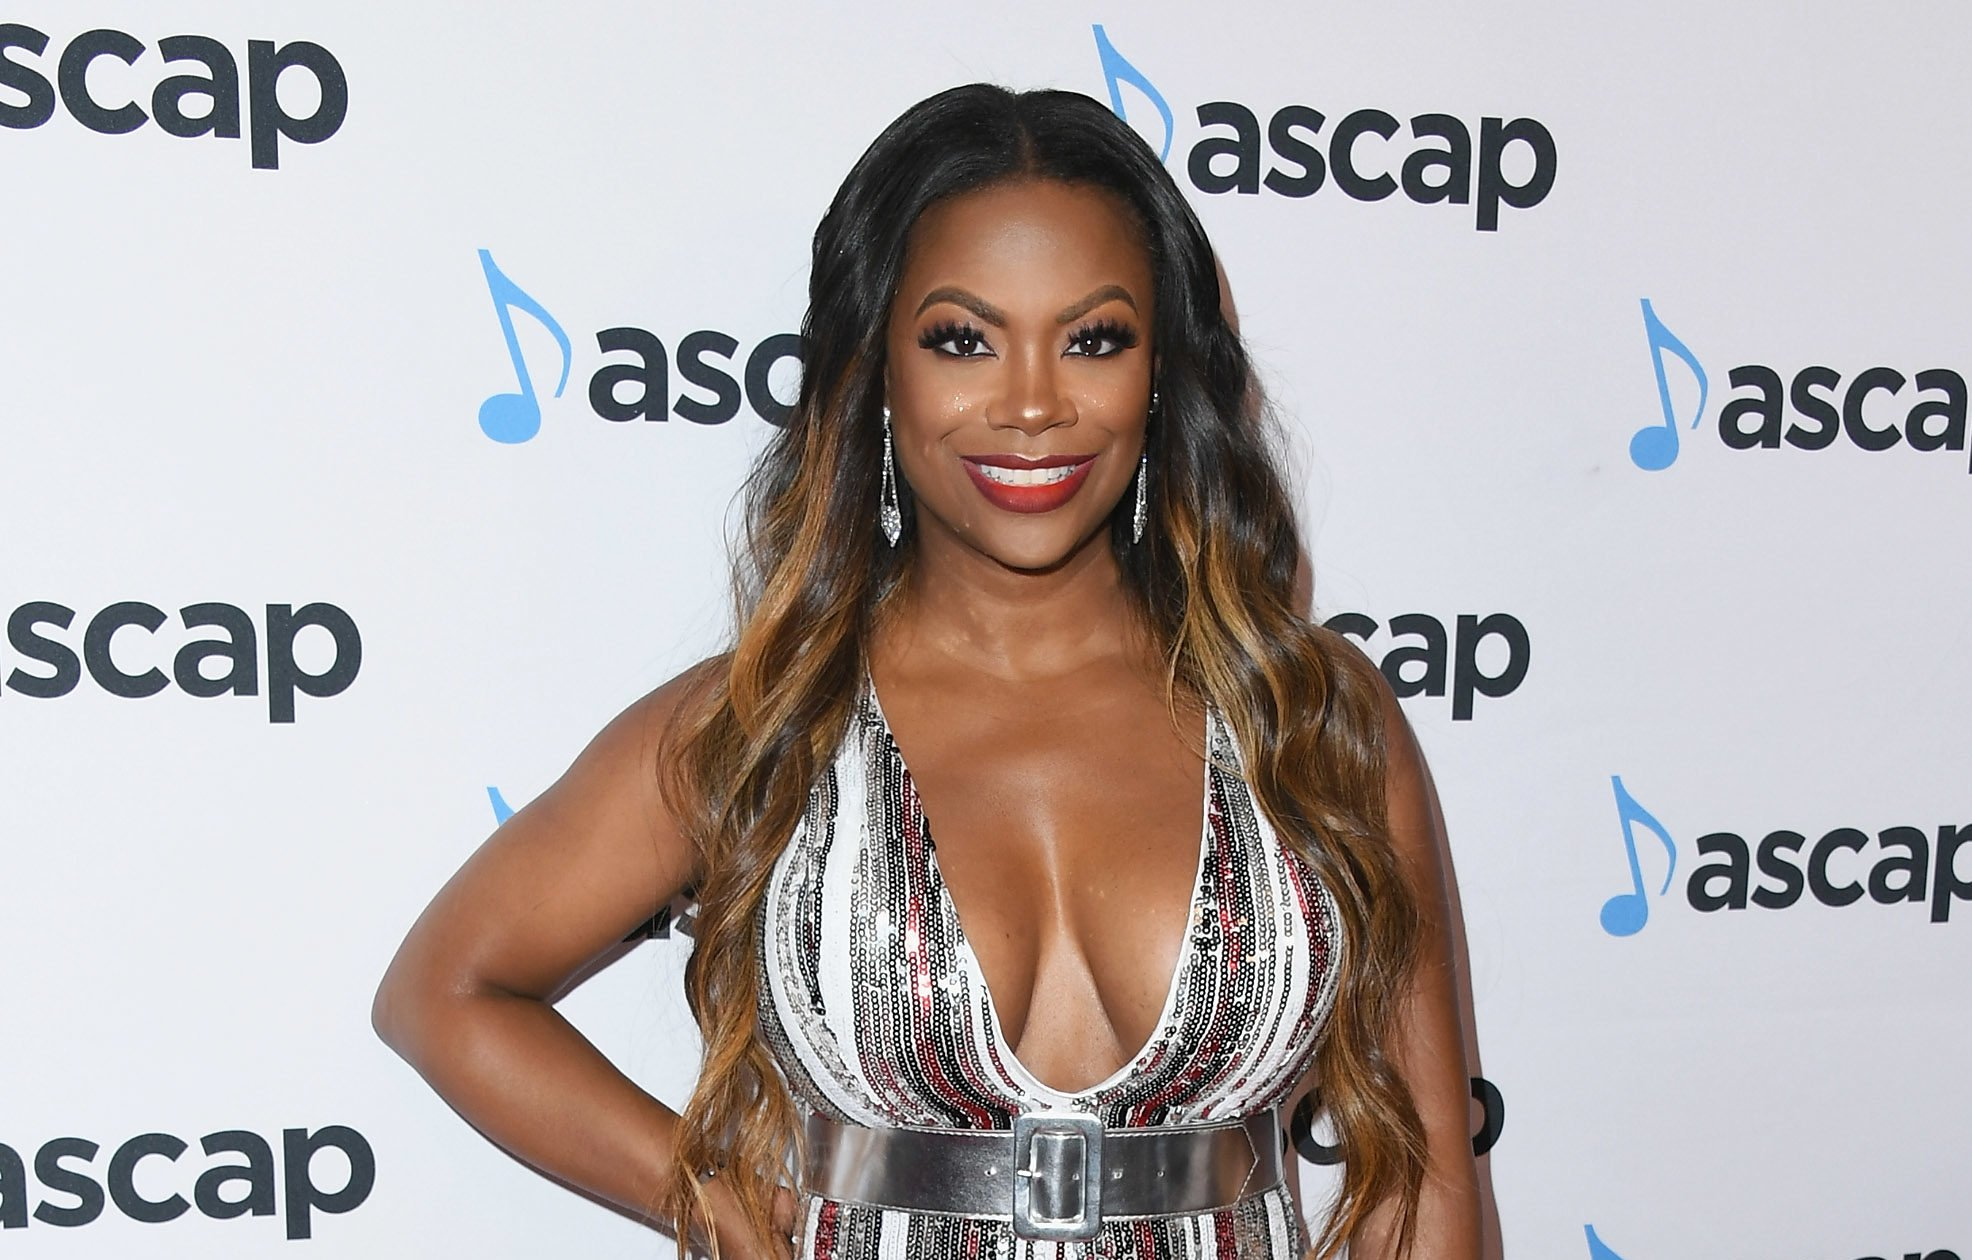 Kandi Burruss Shares A Motivational Message That Works For Her